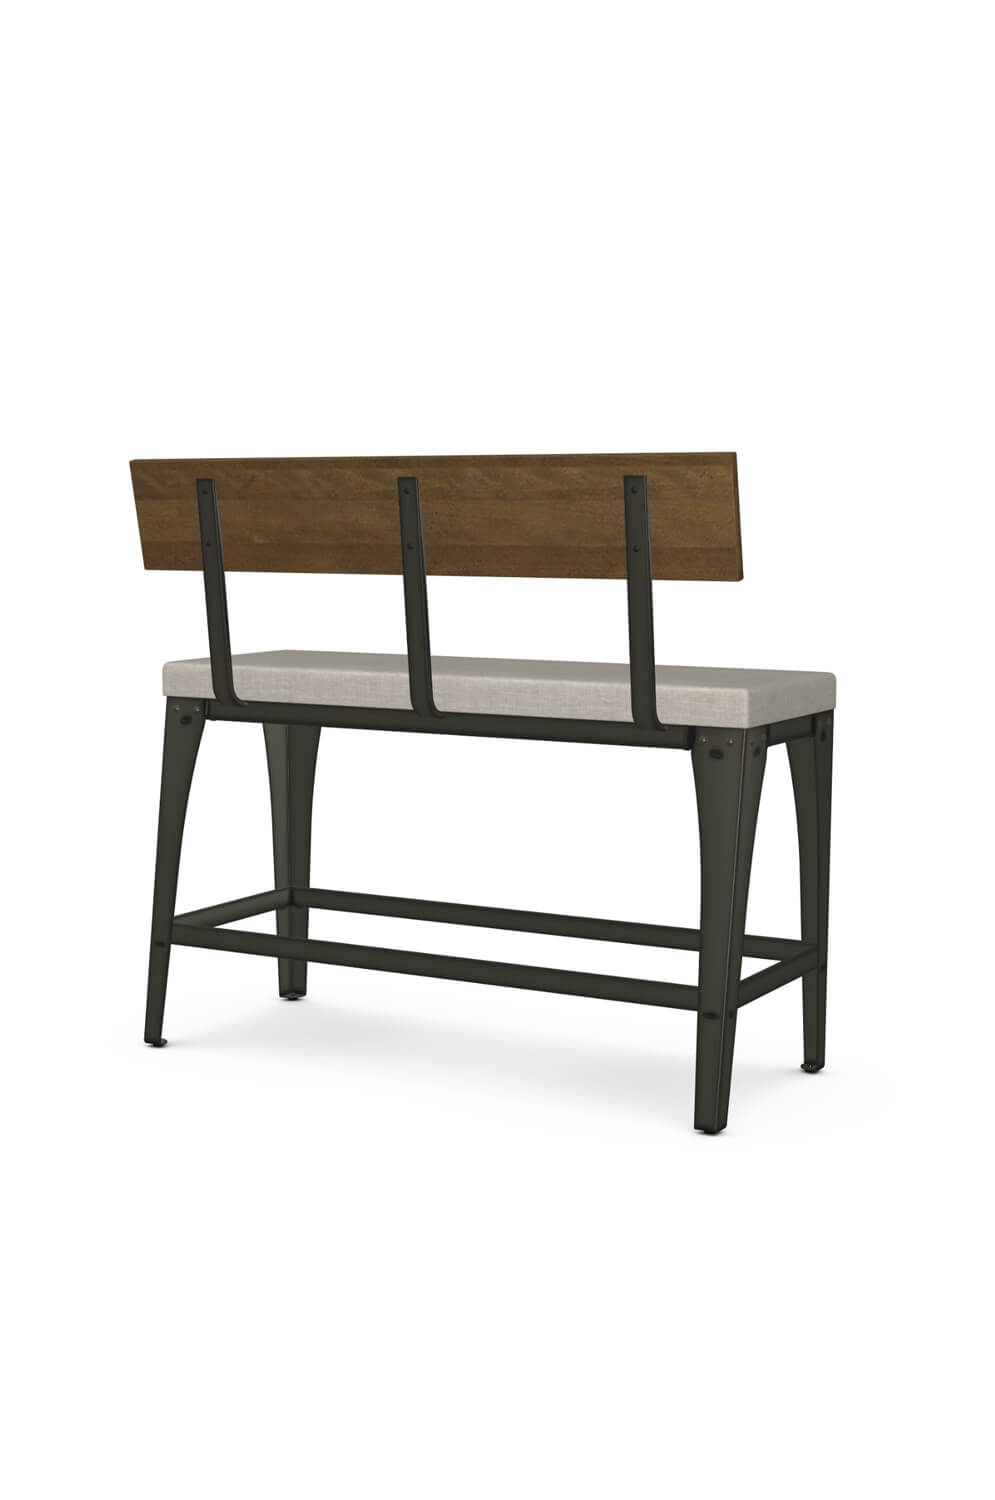 Amisco S Architect Industrial Counter Height Bench With Back And Cushion